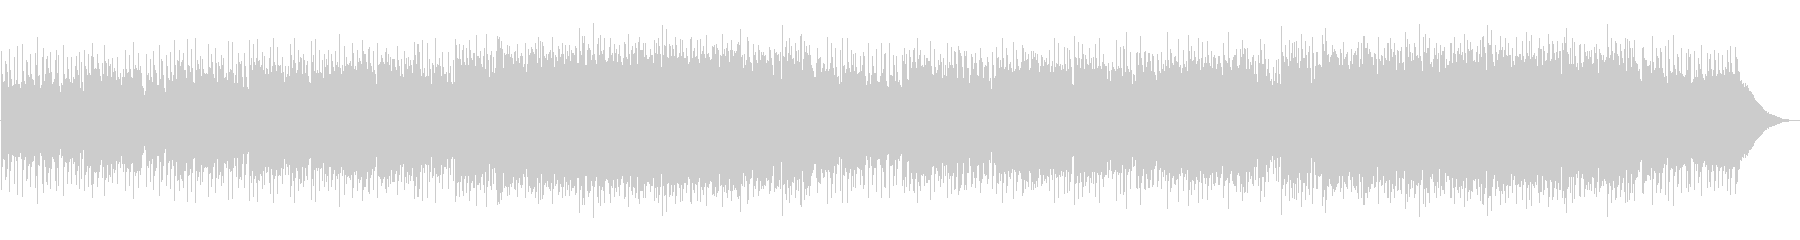 A refreshing and light live violin's unreproduced waveform